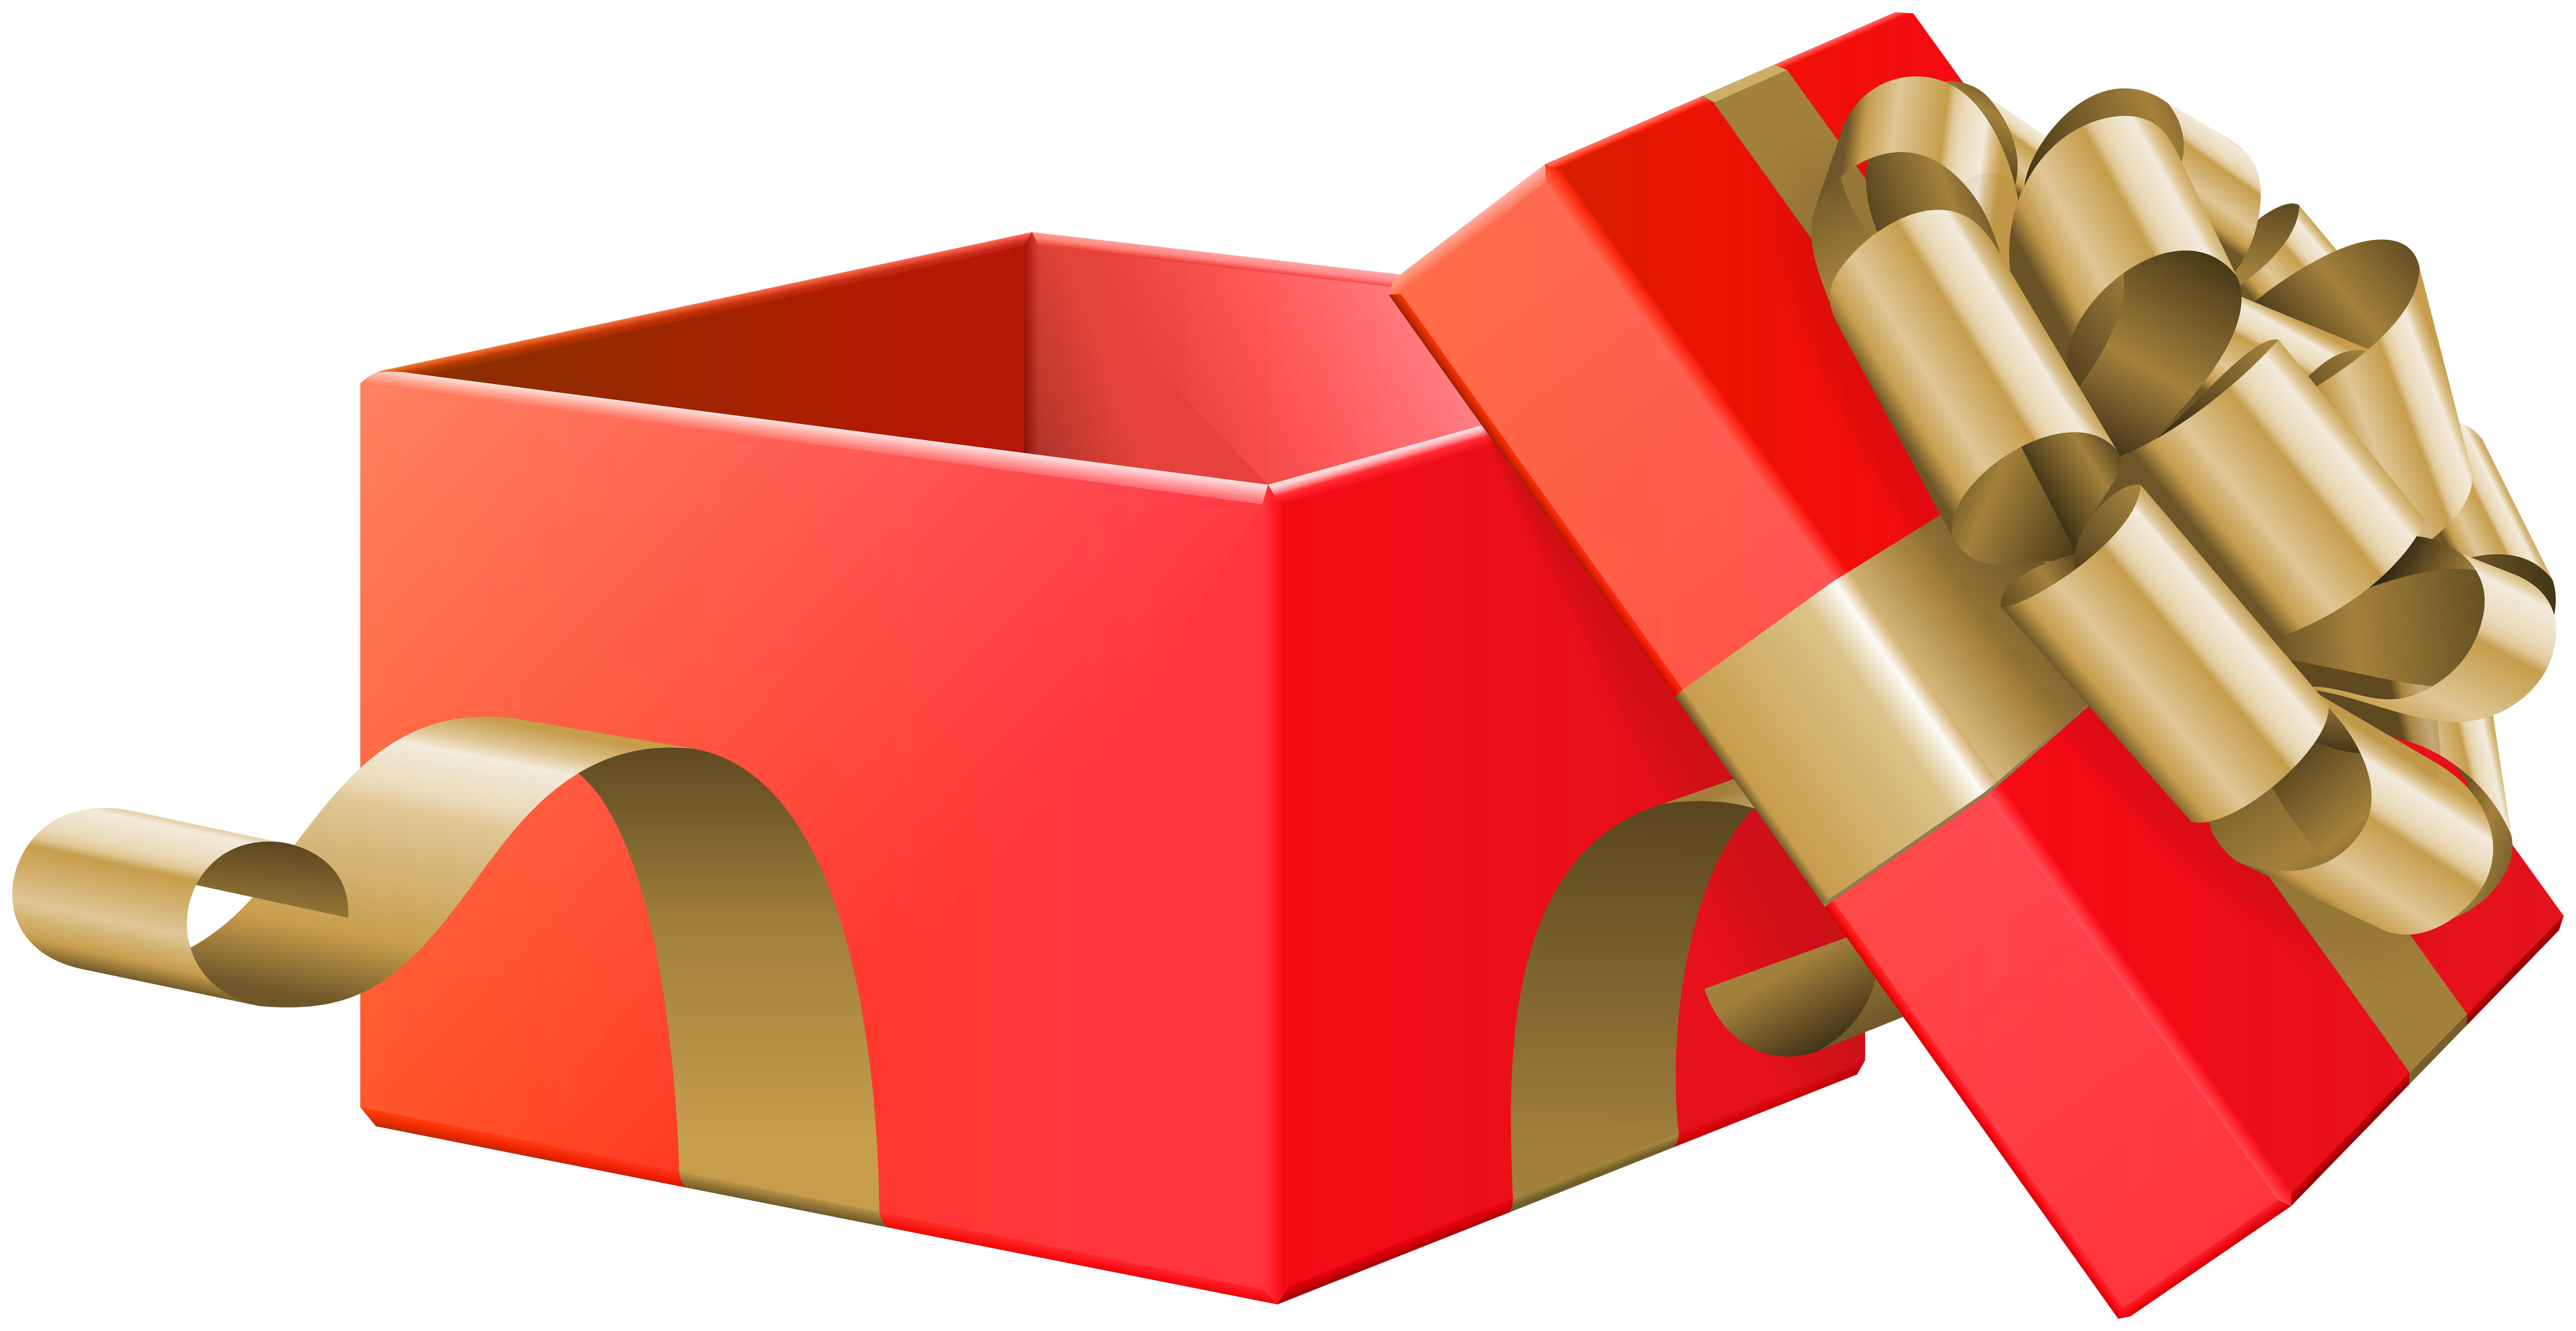 Open Gift Box Red Transparent Clip Art Image.